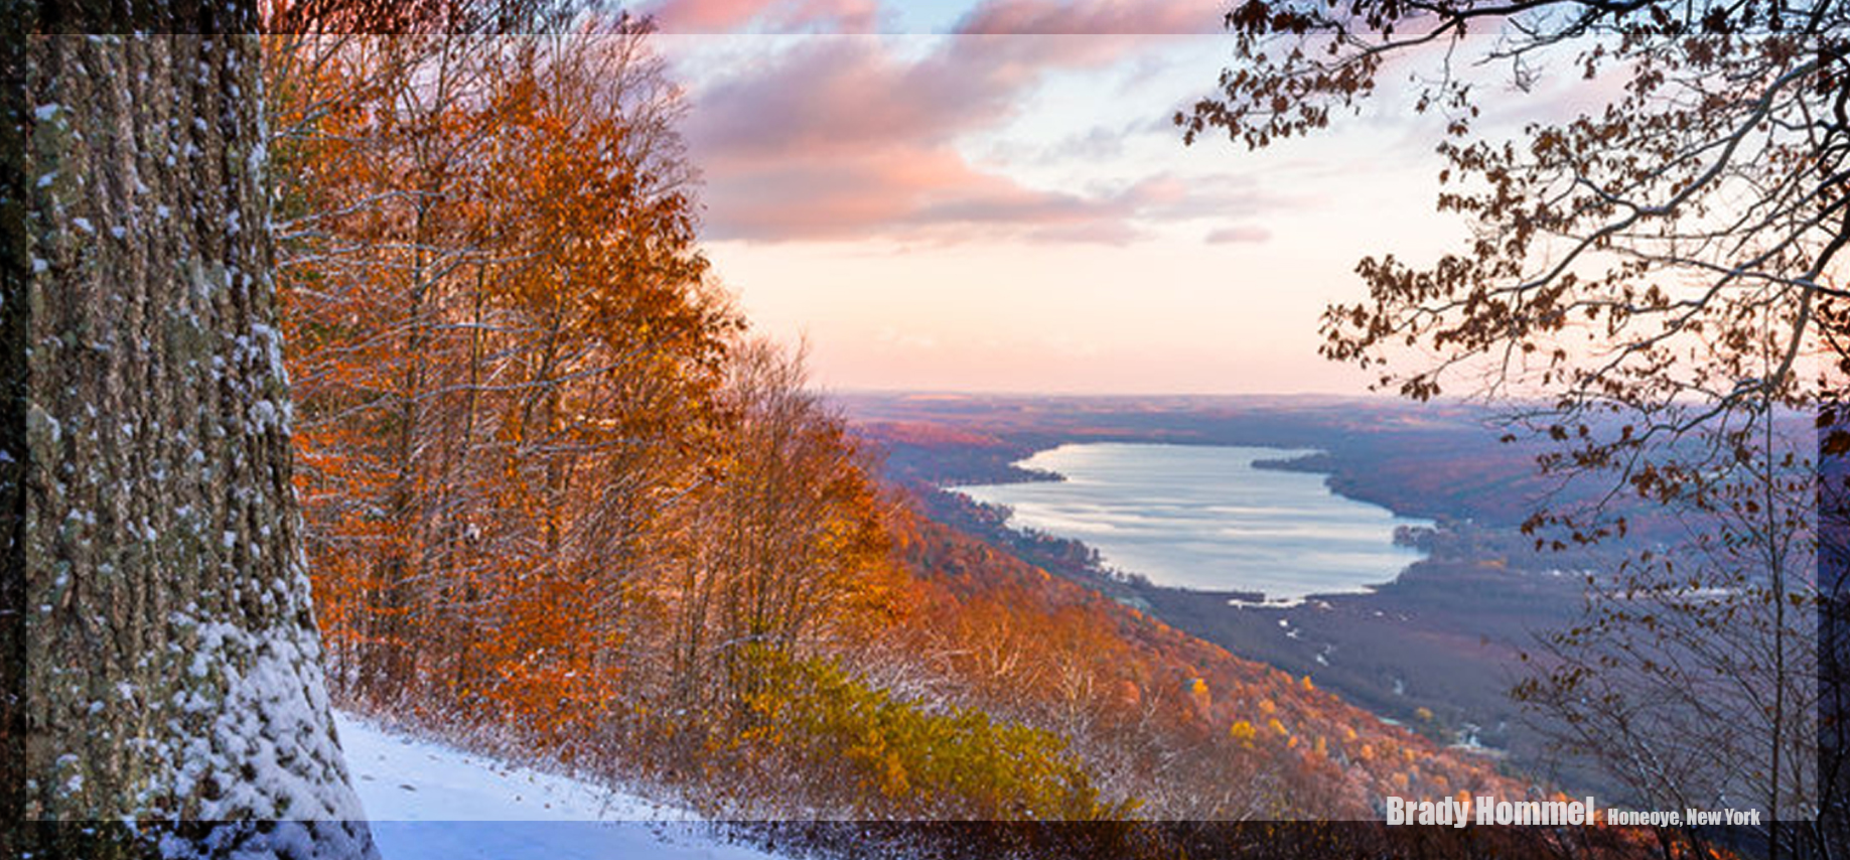 View of Honeoye lake from Harriet Hollister